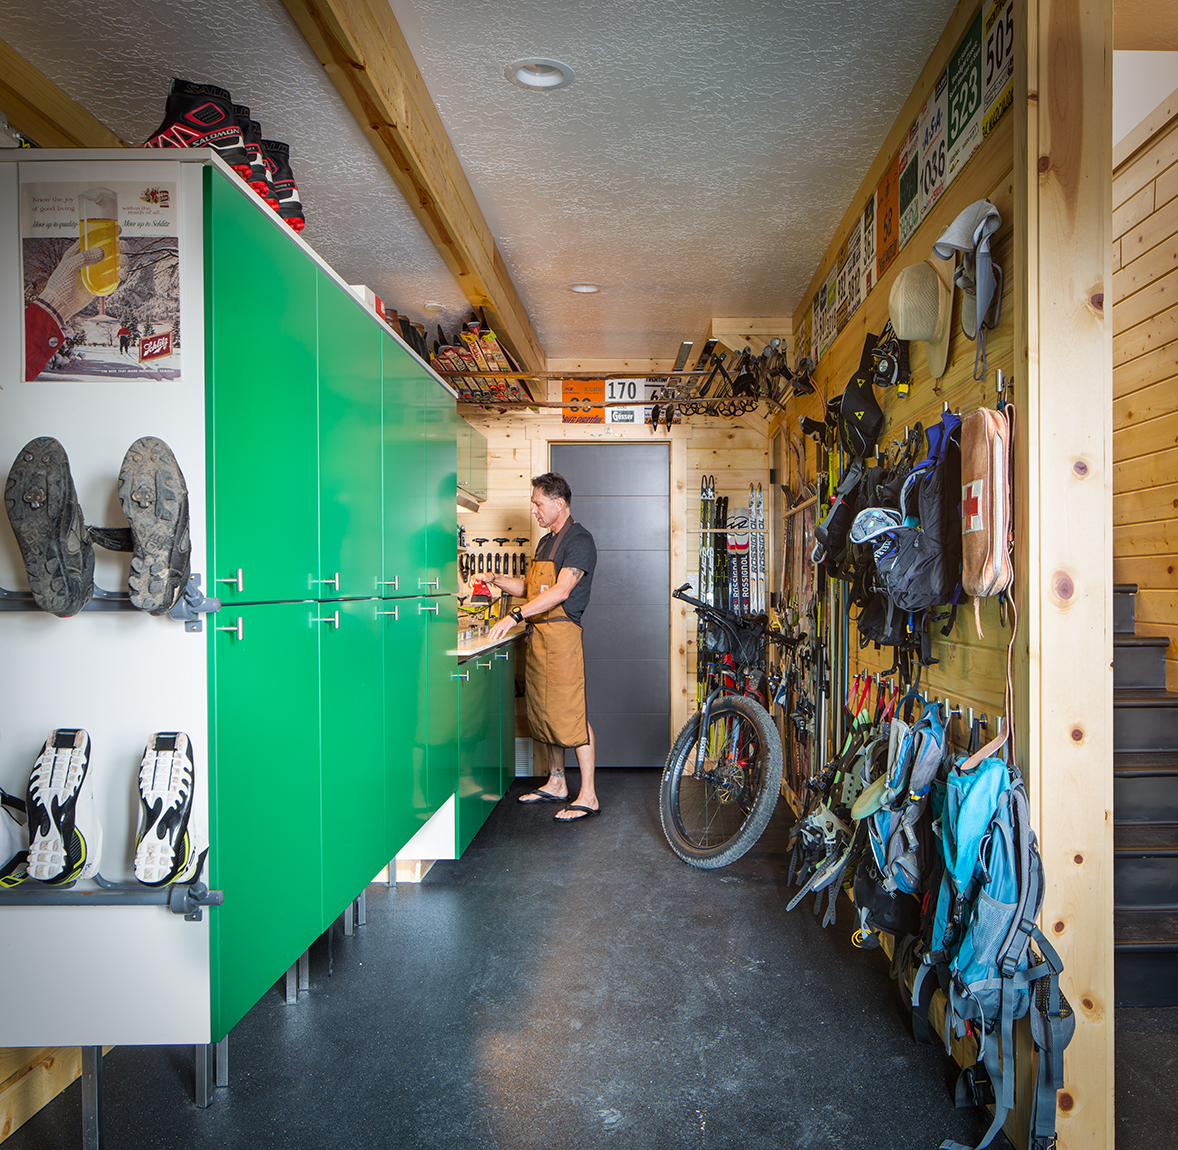 This is a photograph of a man working on his outdoor toys in his man cave at his workbench. The camera is looking down the narrow, room and on one side of the room all of the back pack are hung and on the other side of the room is his work bemch and strorage cabinets with green doors. There are also a few rows of cross country ski boots on the wall facing the camera